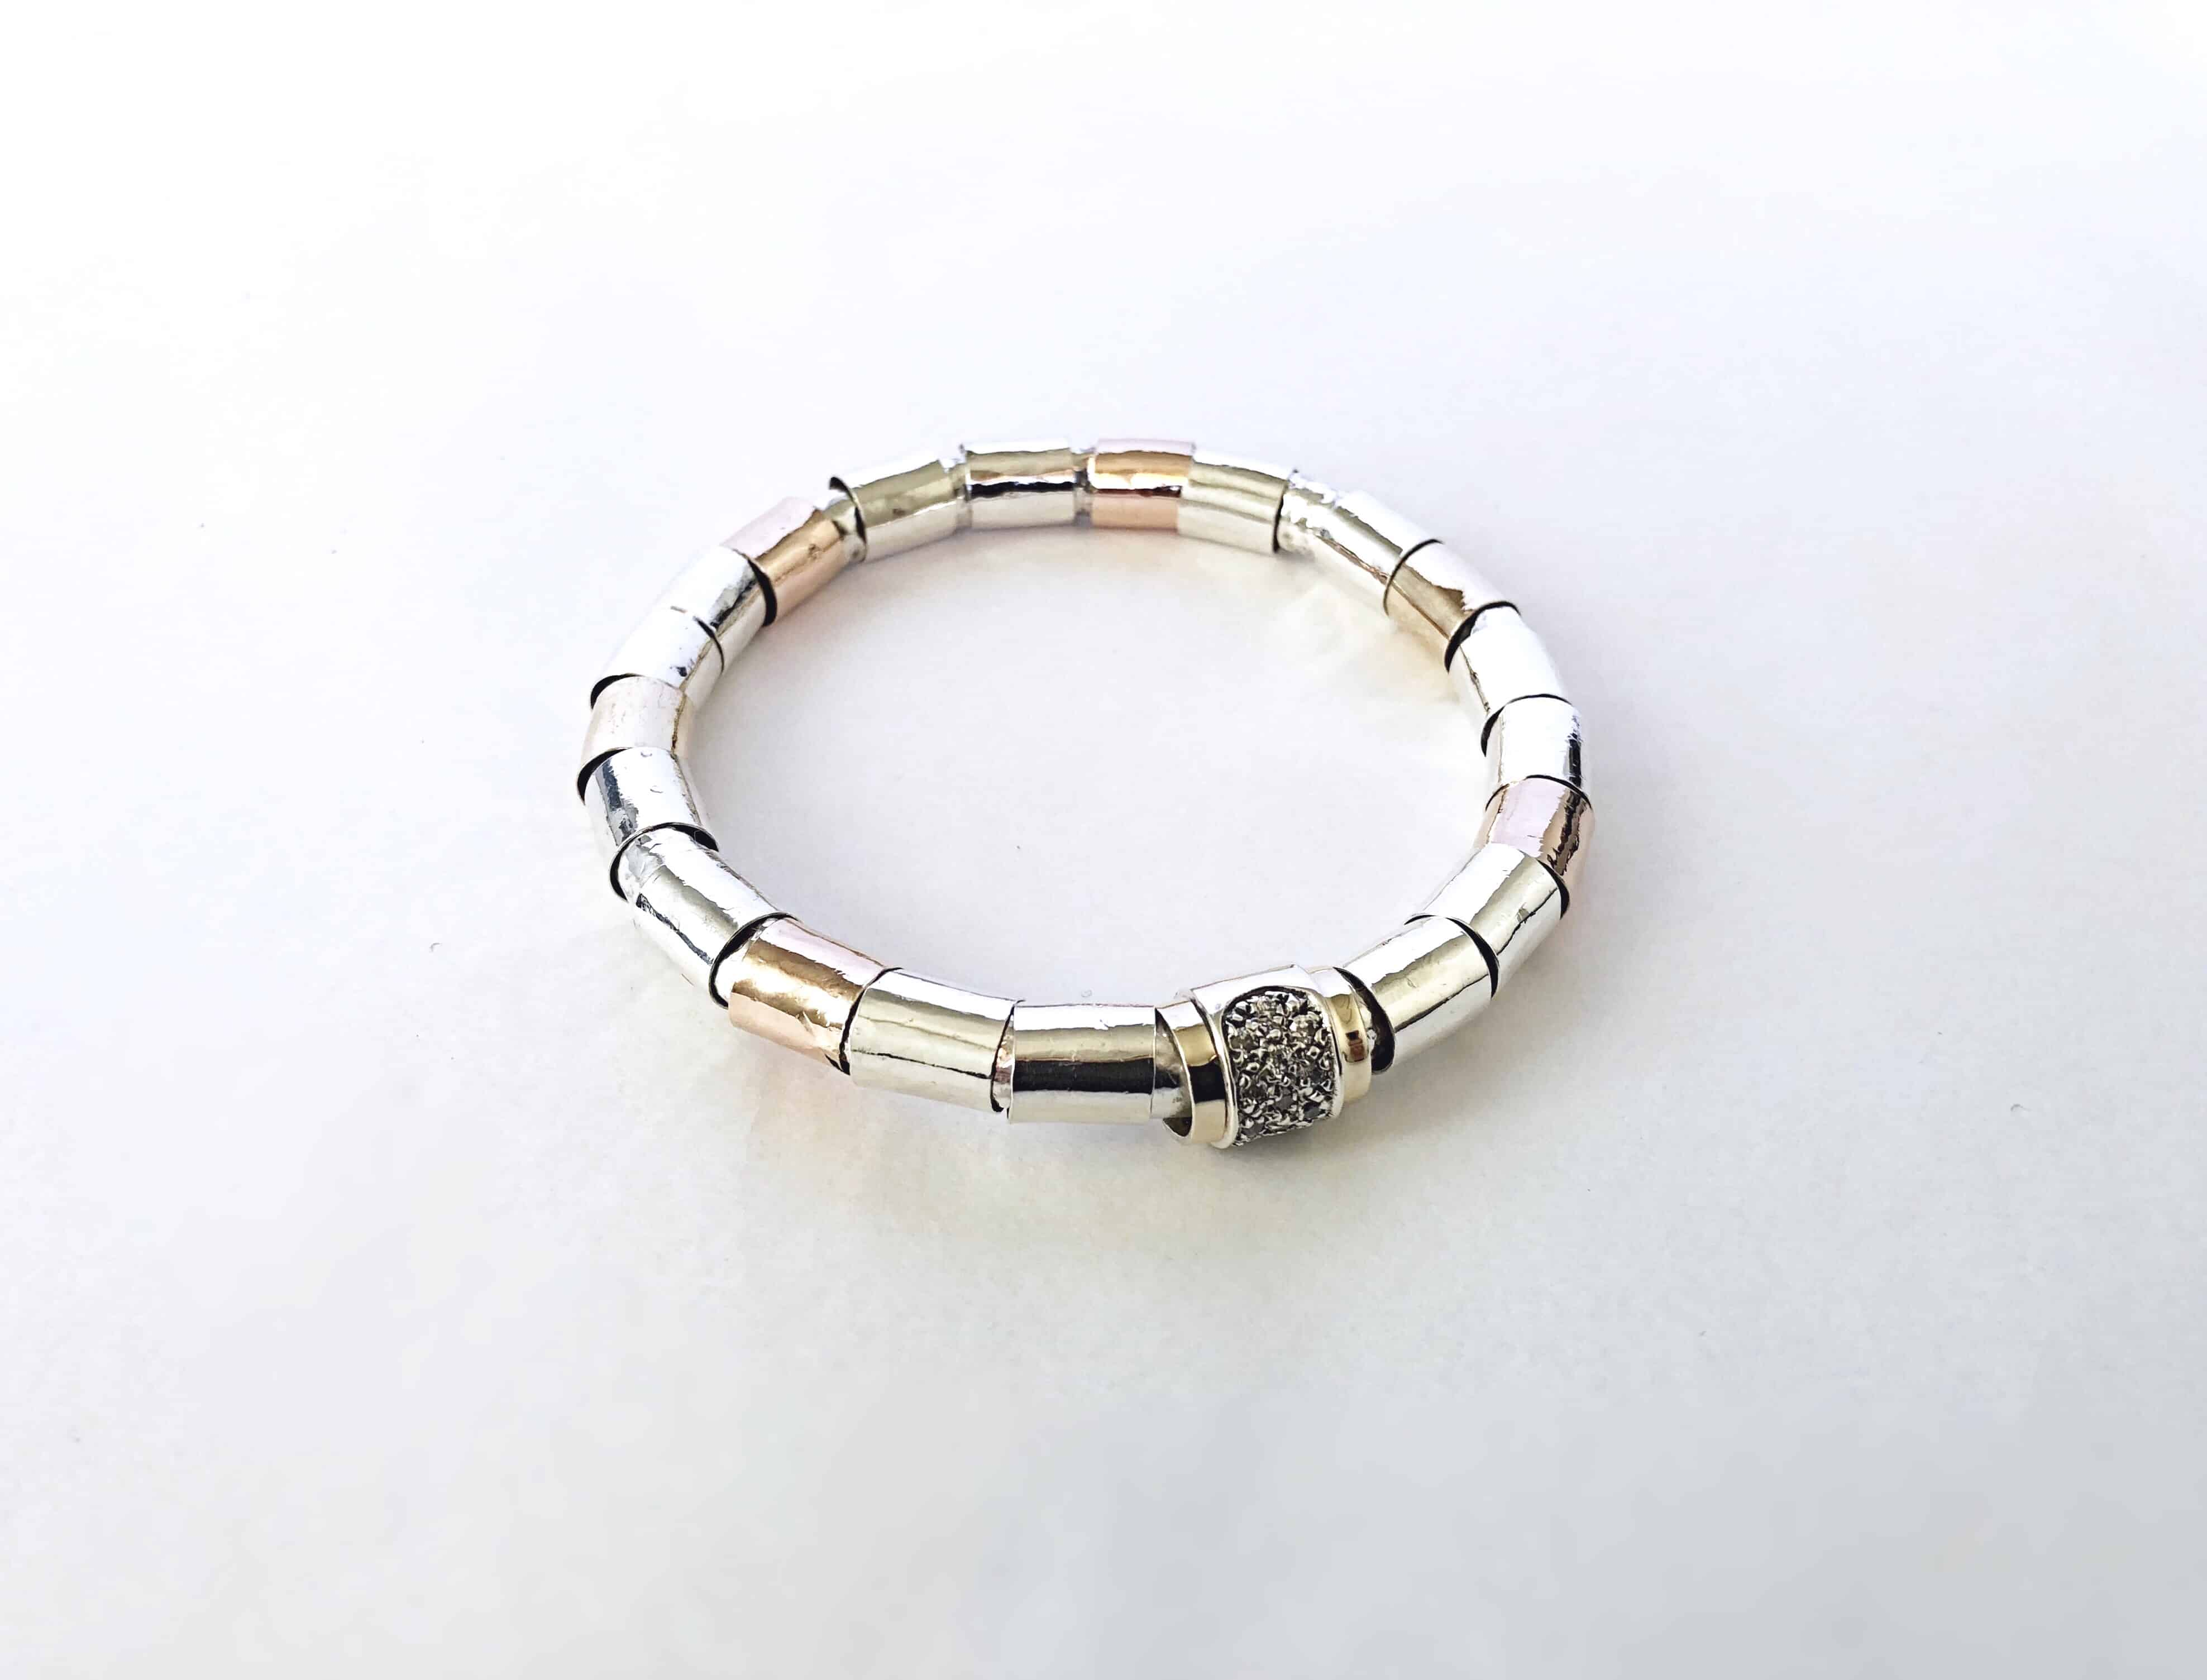 Hayon-bangle-with-silver-rose-gold-tubes-wrapped-around